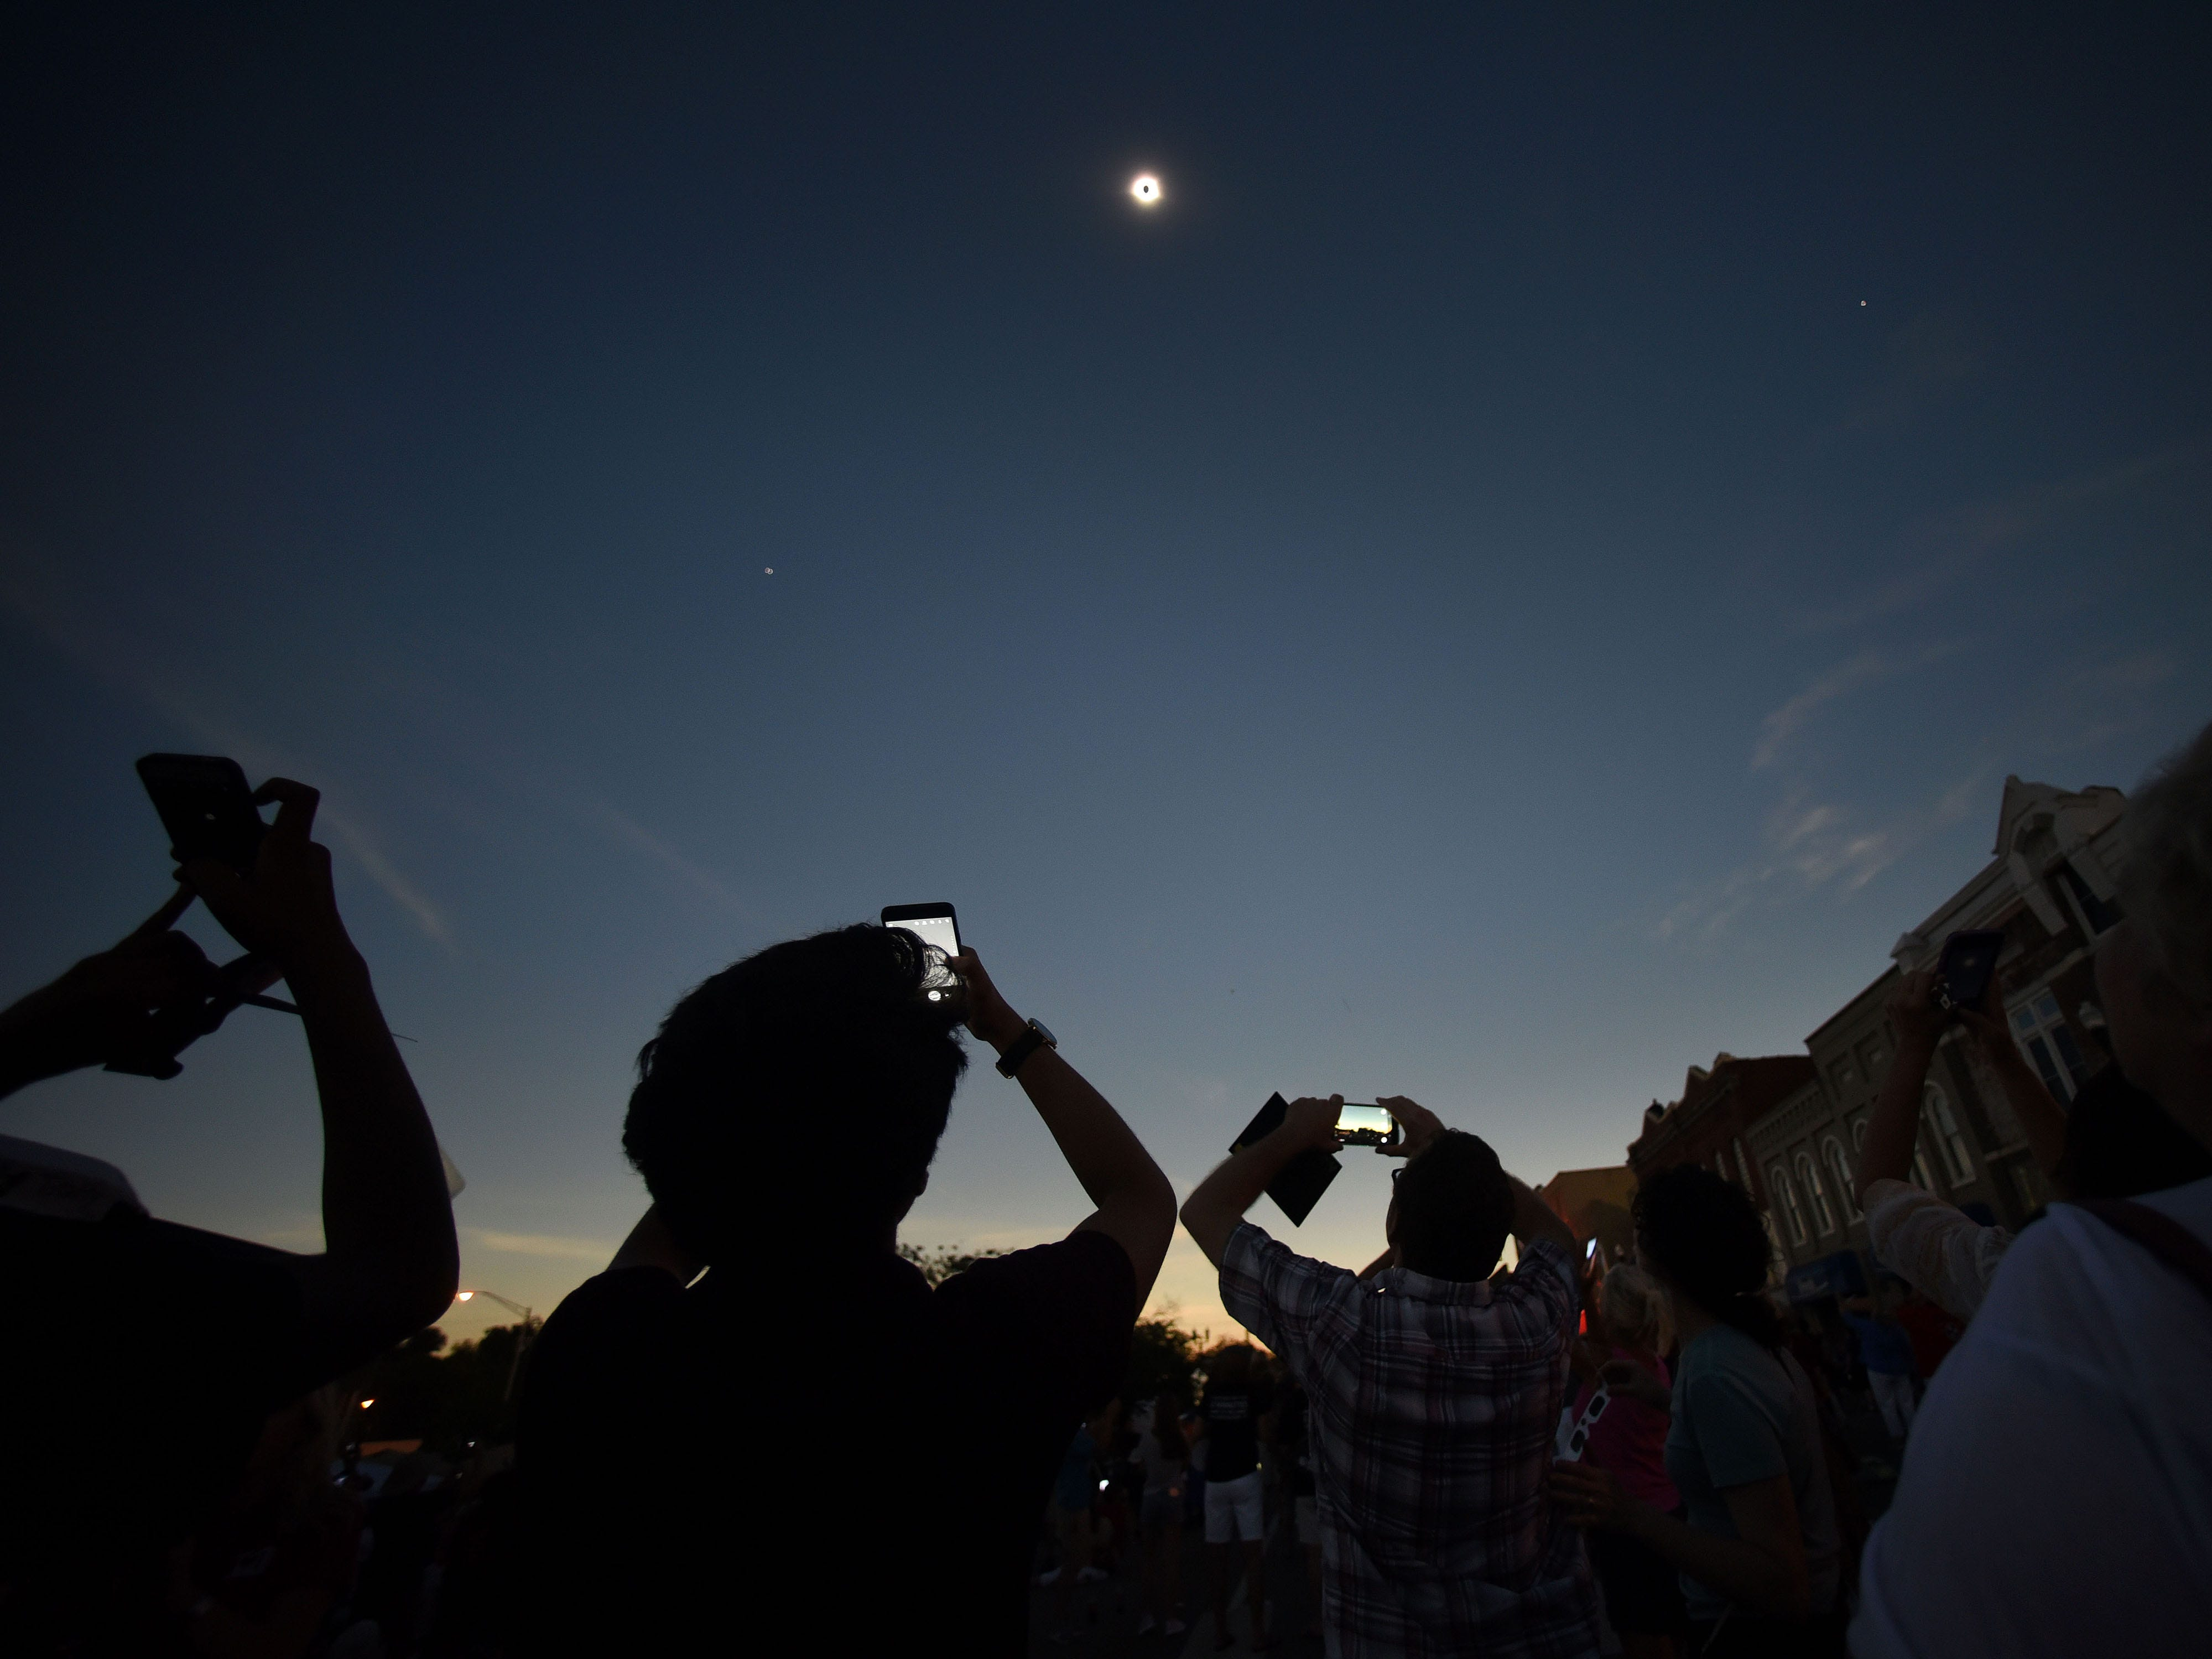 Spectators during totality of the Eclipse 2017 in Downtown Sweetwater Monday, Aug. 21, 2017.